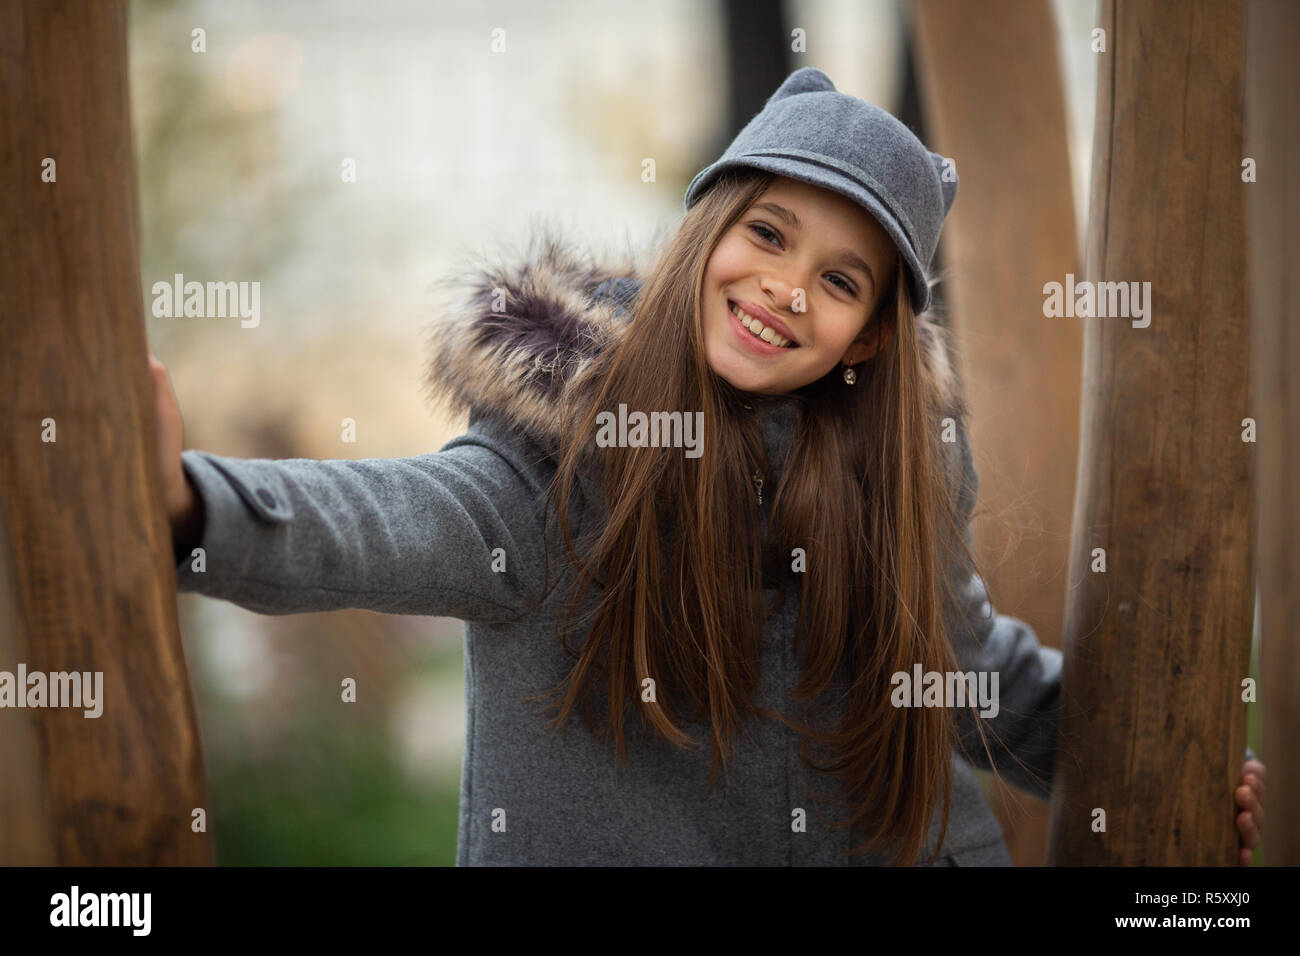 Photo of girl in gray hat and coat among trees on blurred background - Stock Image